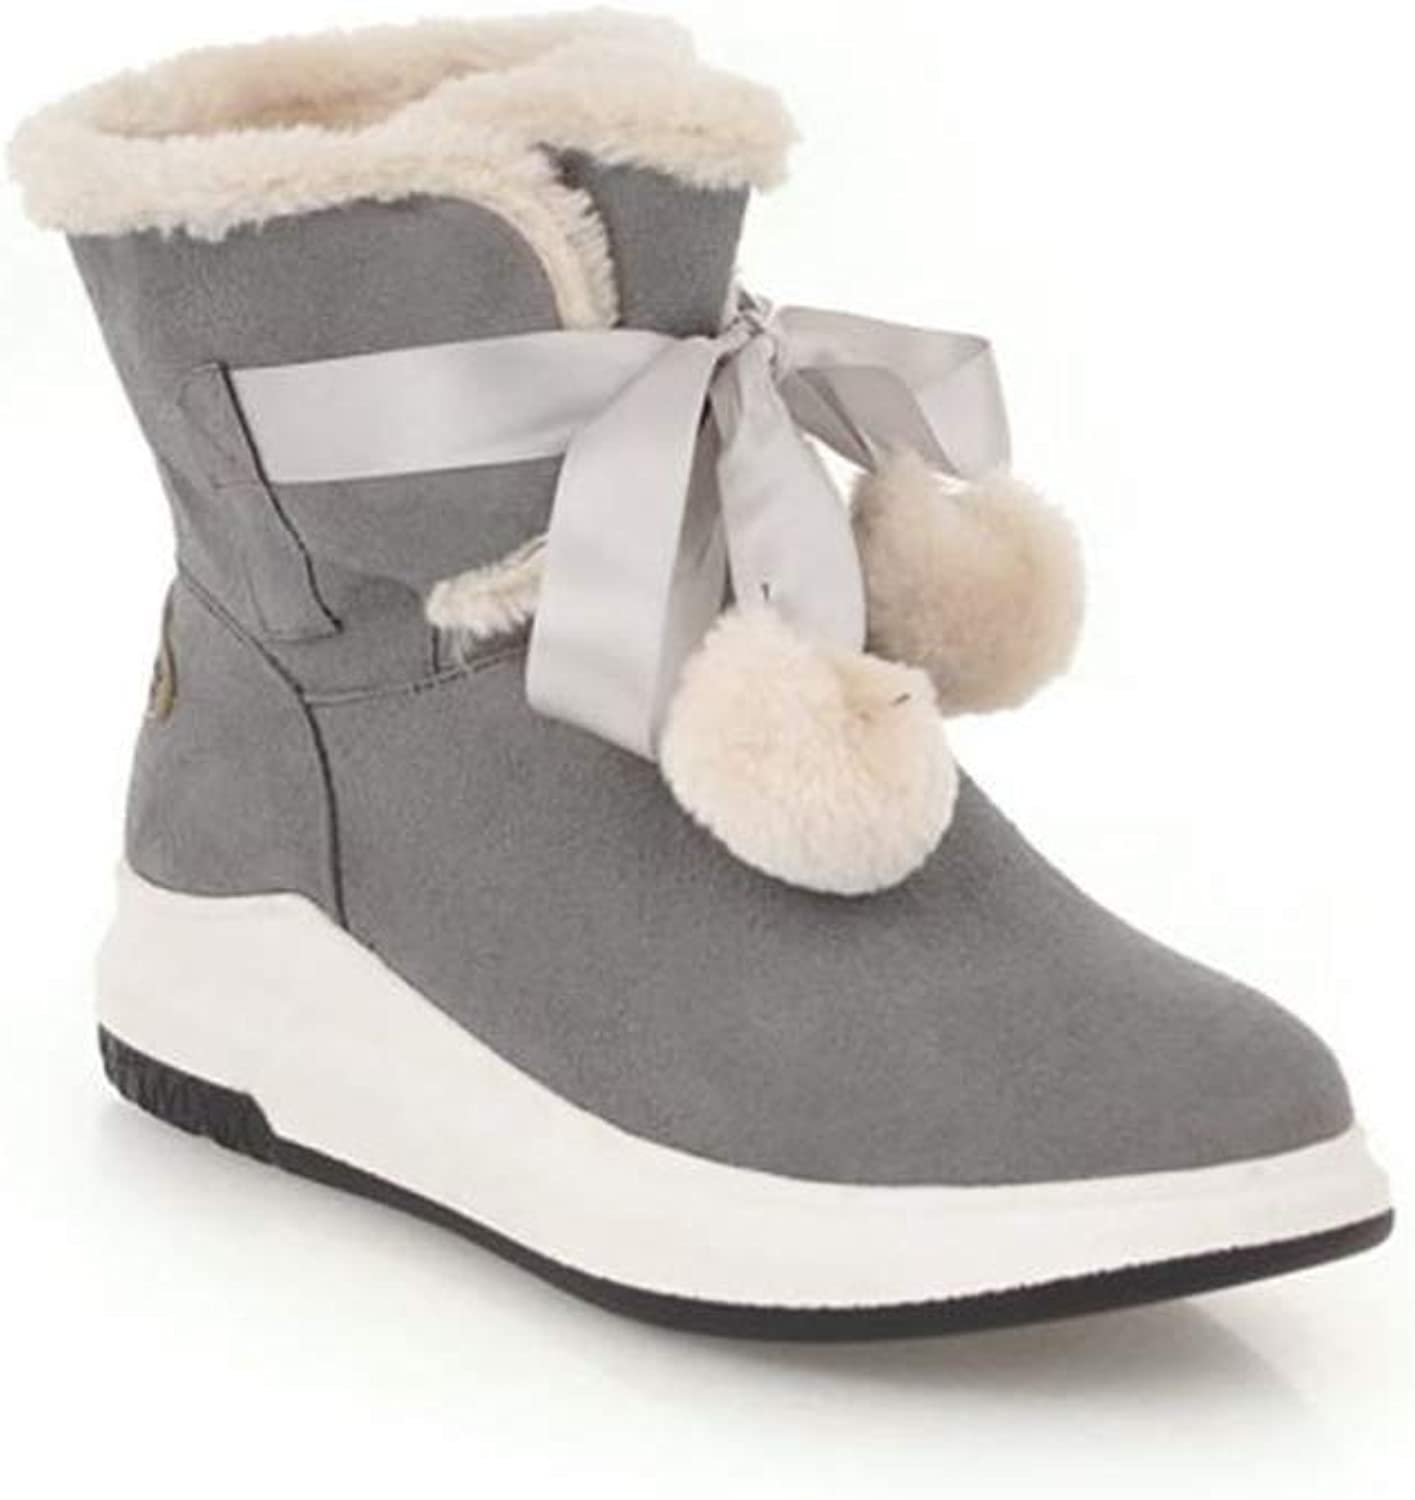 Womens Warm Winter Classic Ankle Boots Short Men Warm Boots UG Snow Boots for Women